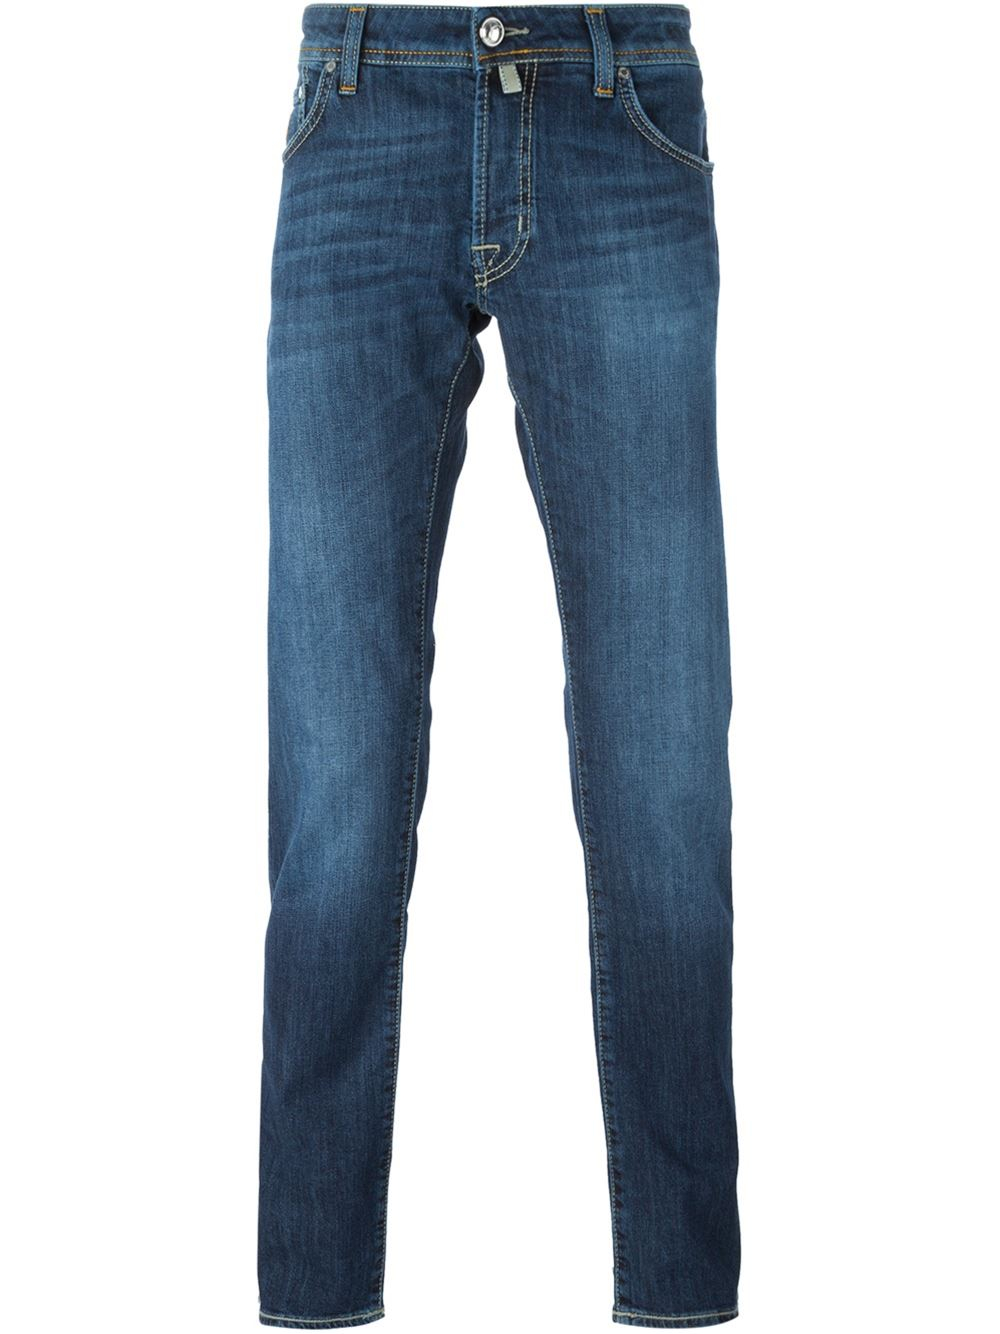 jacob cohen straight fit jeans in blue for men lyst. Black Bedroom Furniture Sets. Home Design Ideas